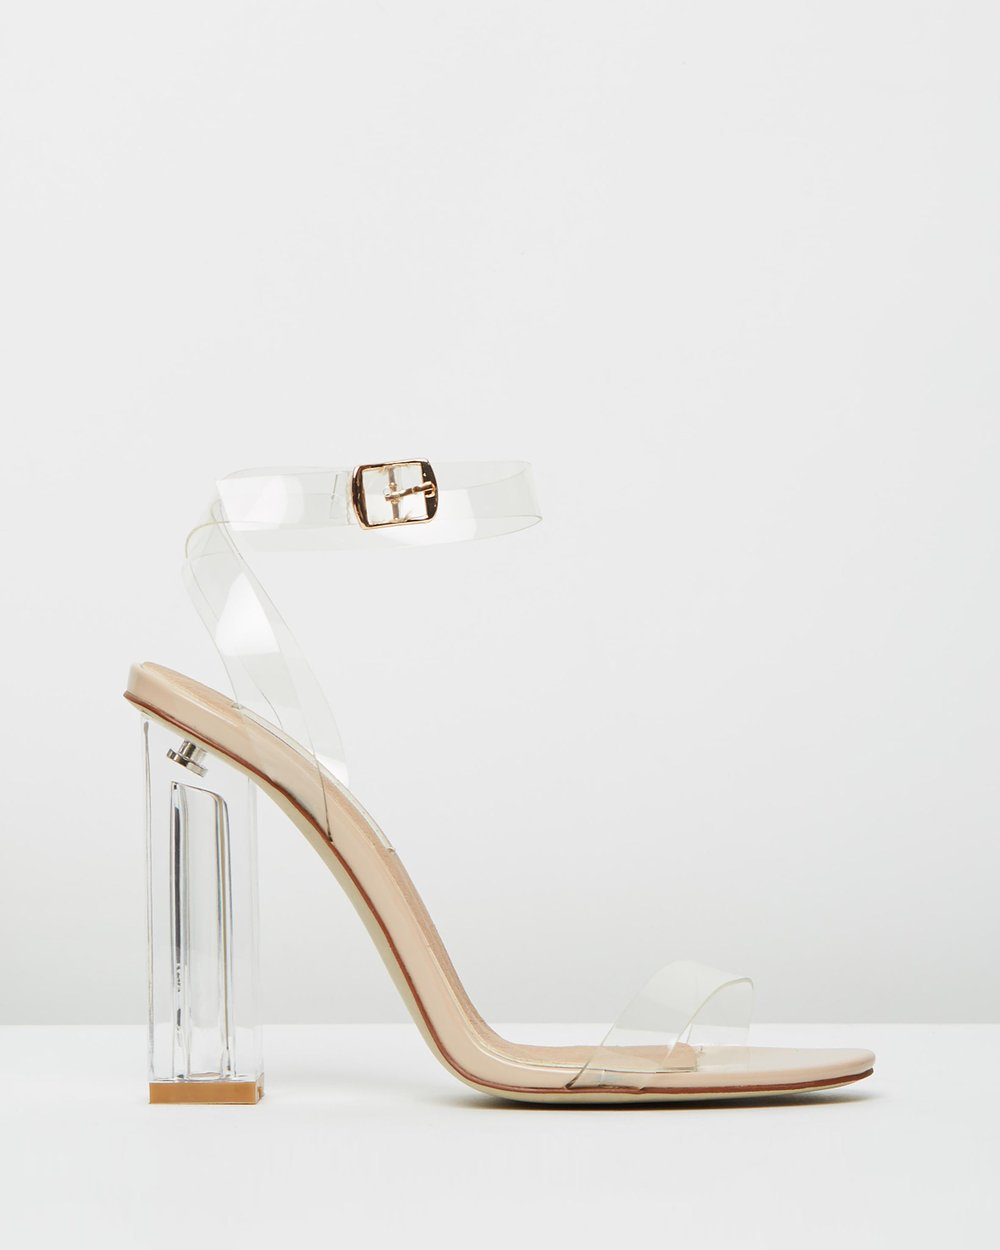 42efb2200b Spirit Square Gem Strap Perspex High Heels in Rose Gold. 1 year ago. $18  $49. 62% OFF. save. Theiconic